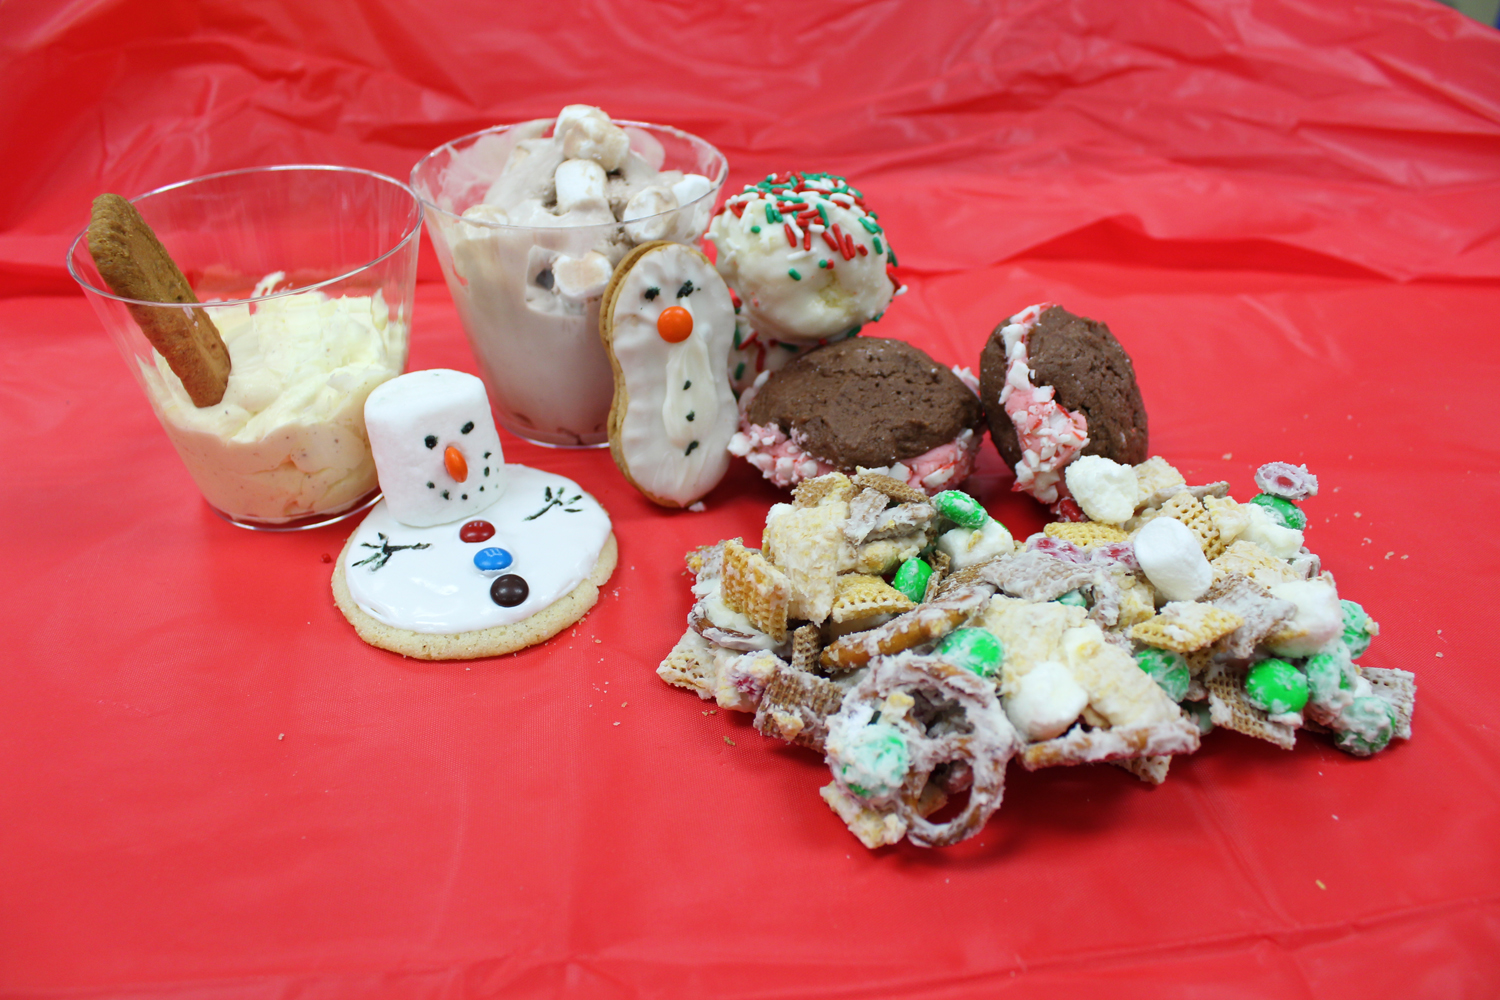 The Inkspot staff tested out some easy winter desserts. Here are the step-by-step recipes for our favorites.